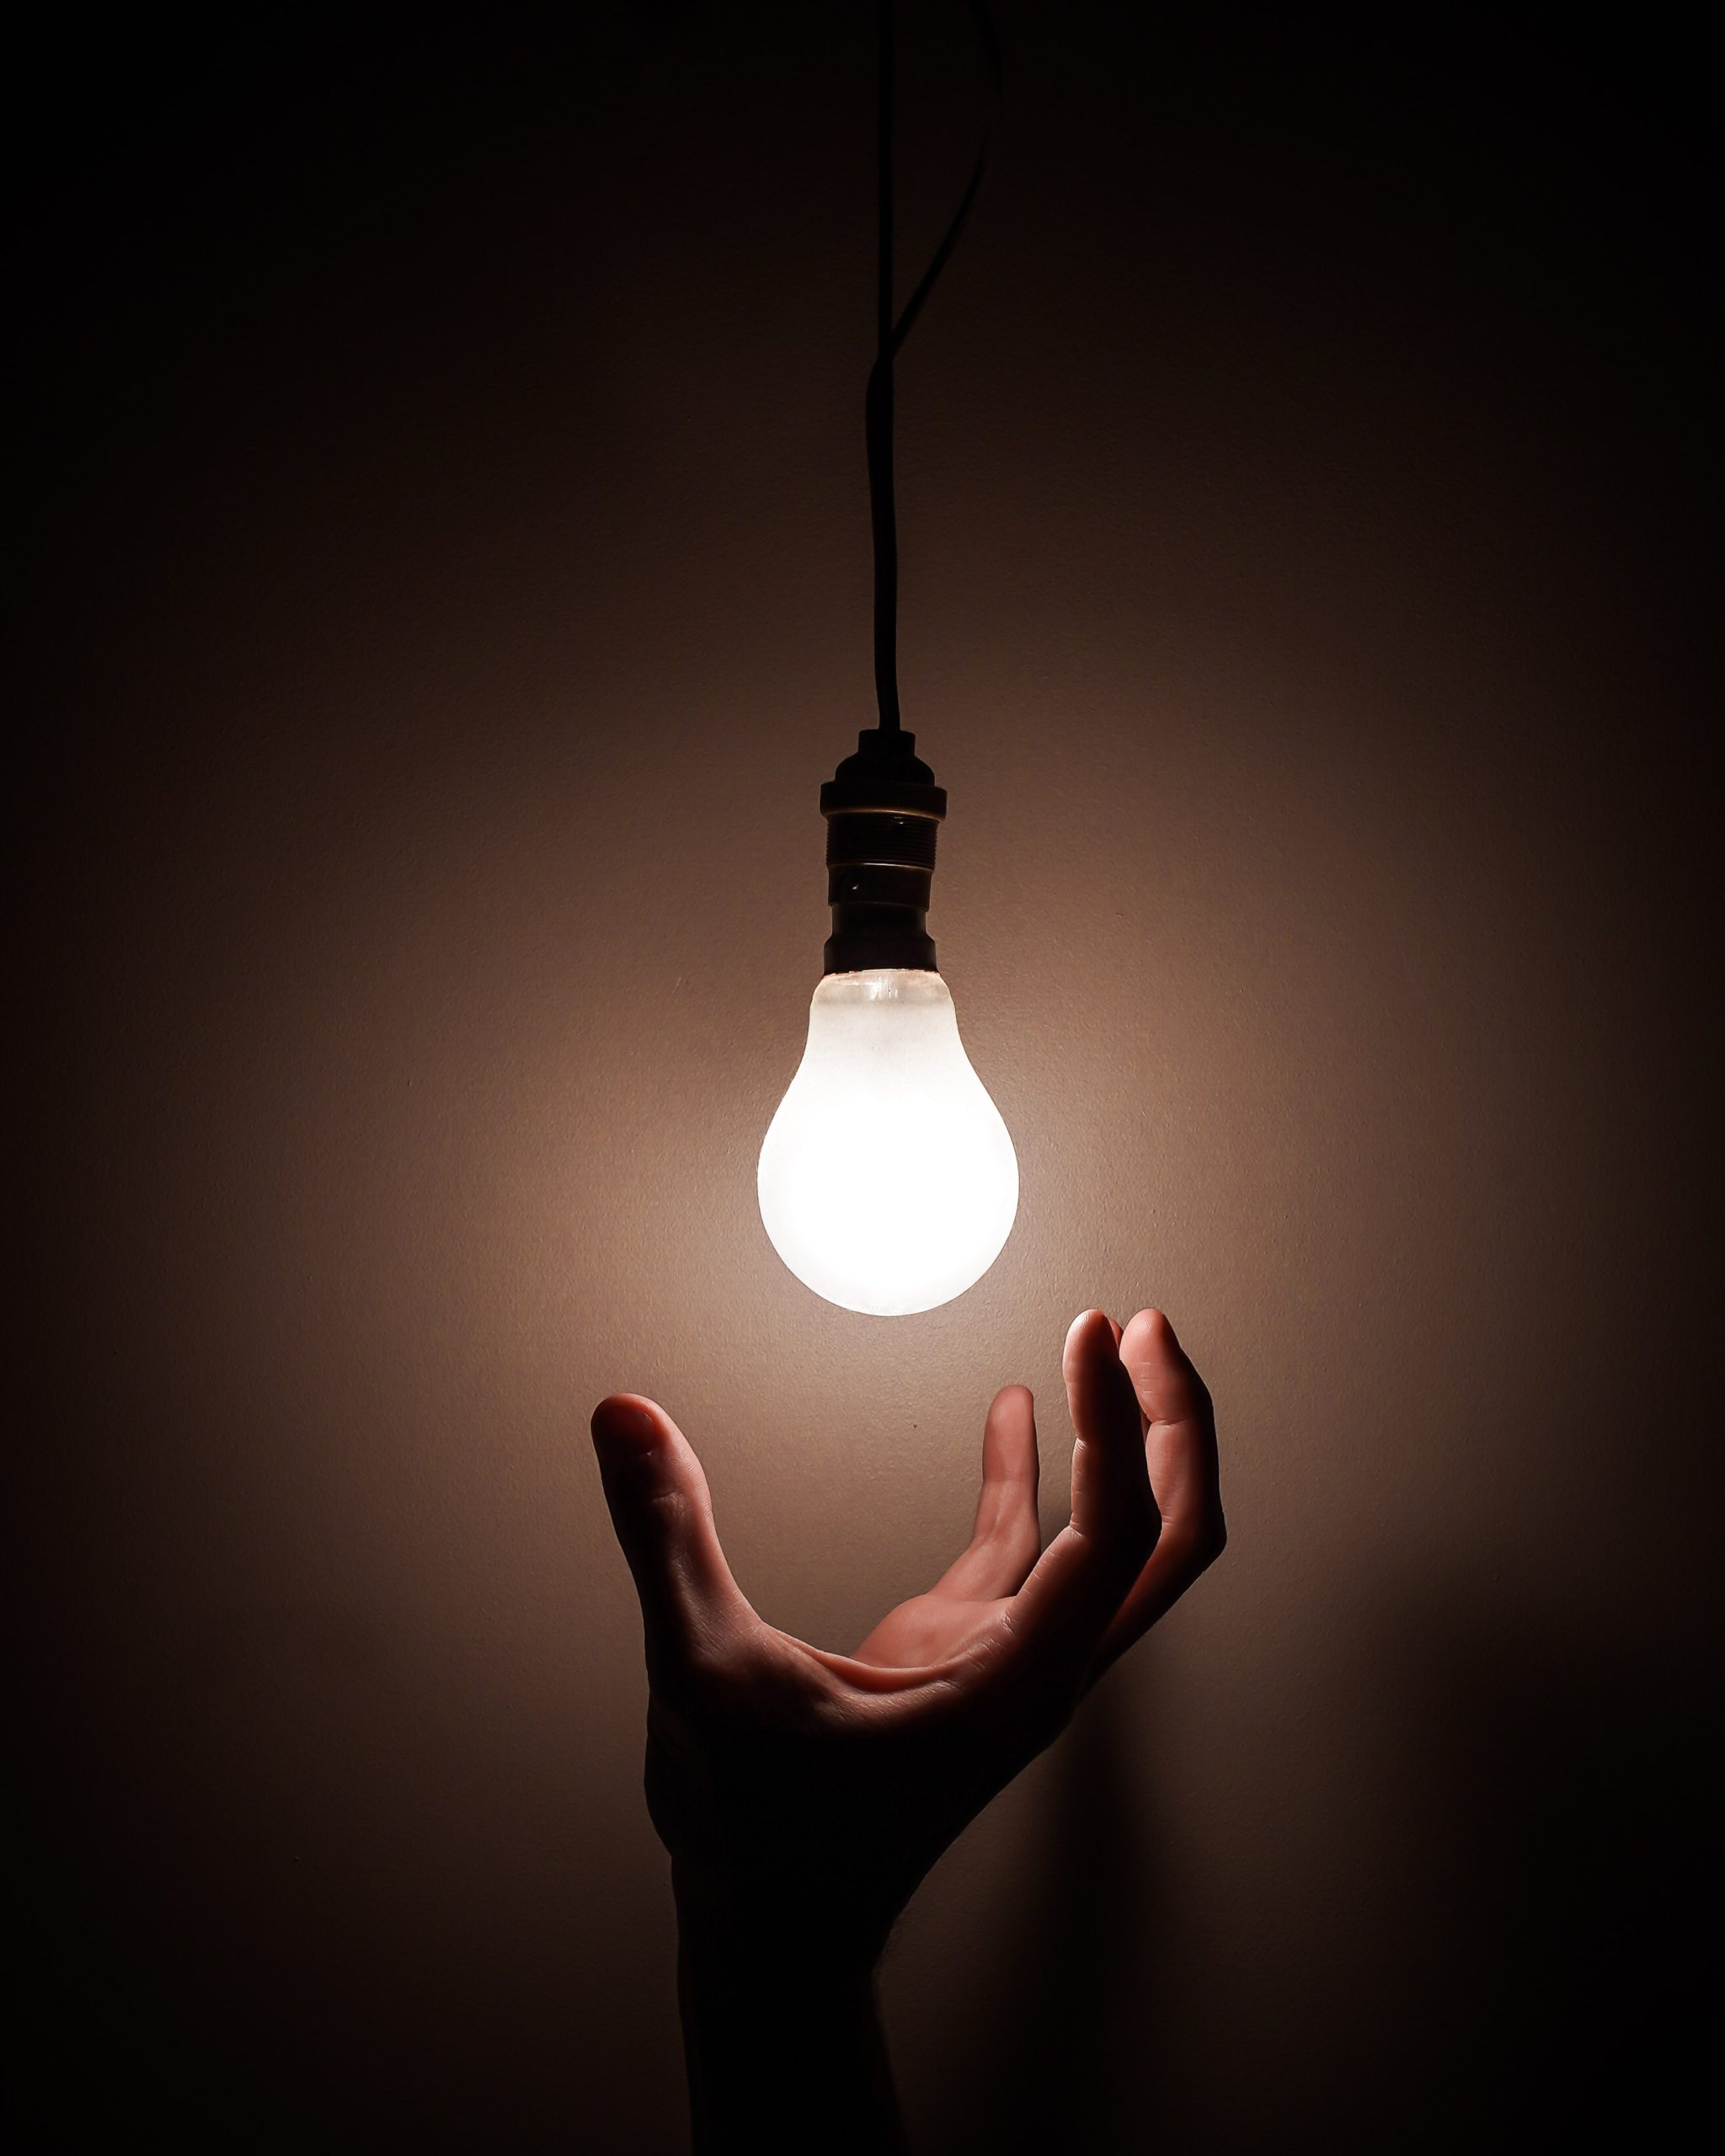 person holding white light bulb 3651820 scaled